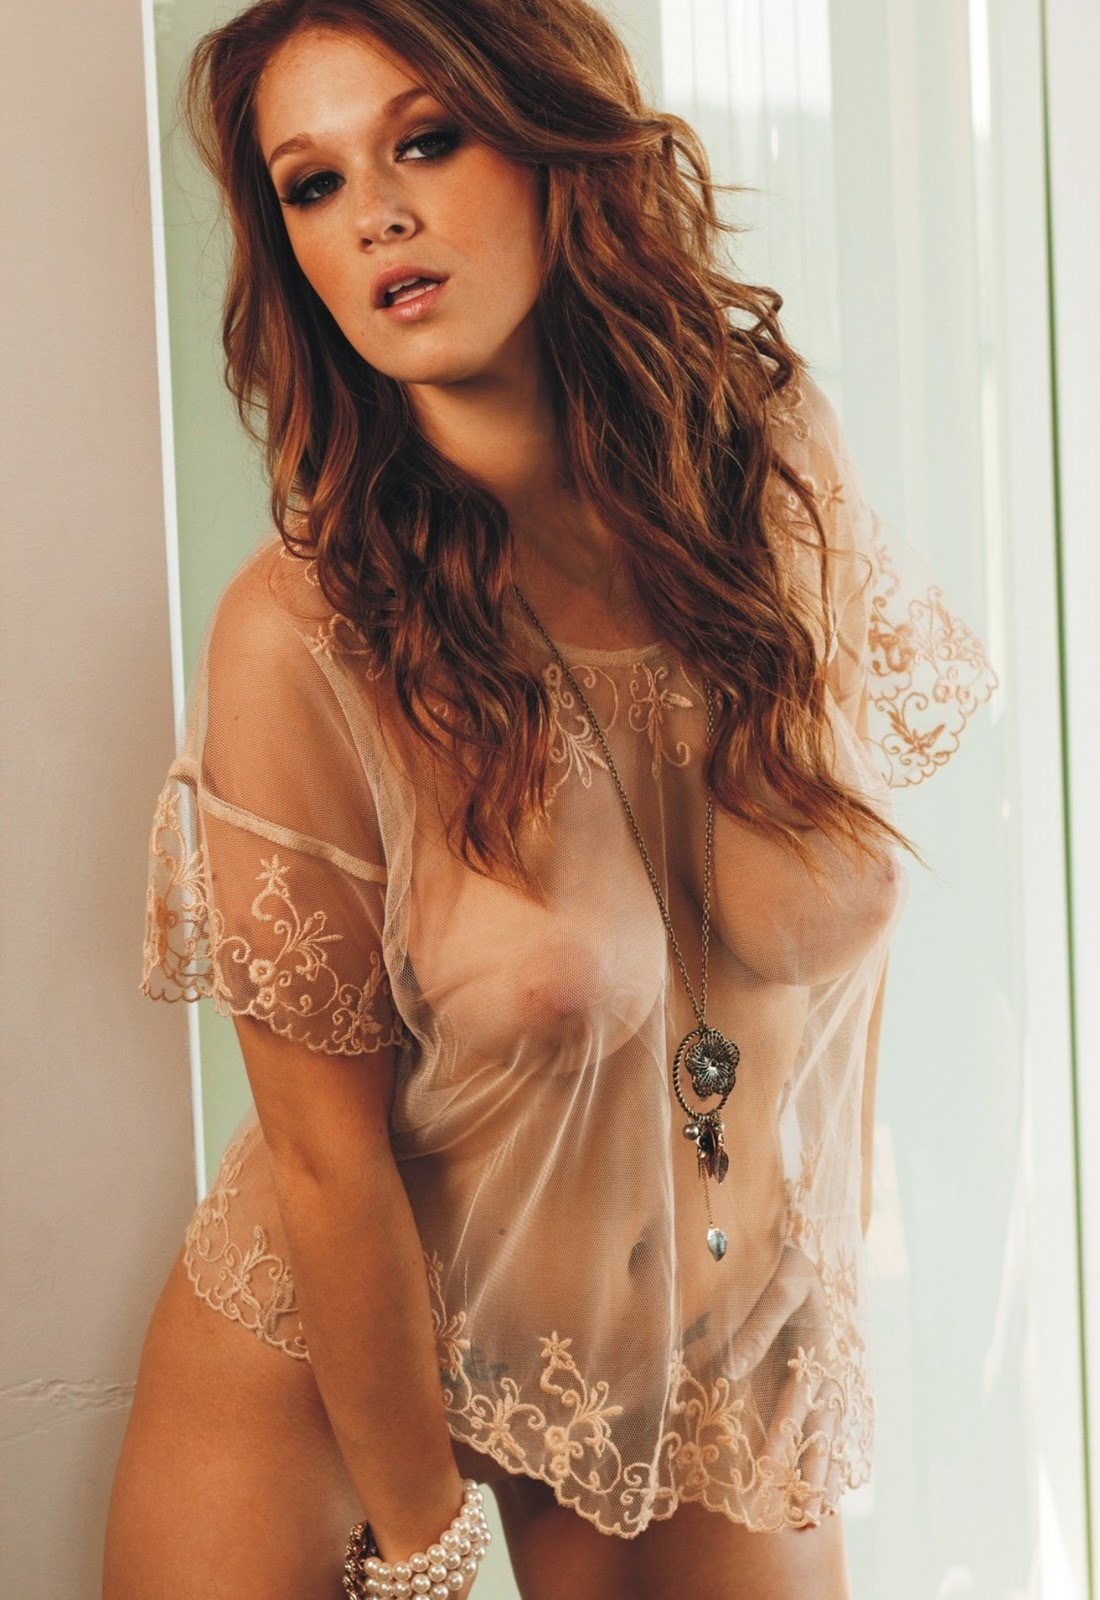 evelyn free porn tube watch download and cum evelyn #amazing #amazingbody #attractive #babe #beautiful #beautifulface #beautifulgirl #beauty #bigboobs #bigbreasts #bigtits #blonde #boobs #breasts #busty #curves #curvy #cute #cuteface #cutegirl #eatable #erotic #femmestructure #flatstomach #fuckable #gorgeous #hot #hotbody #hottie #hourglass #innocent #innocenteve #innocentlook #kissablelips #lovely #niceboobs #nicebreasts #nicerack #nicetits #nipples #perfect #perfectboobs #perfectbreasts #perfectlytrimmedpussy #perfecttits #pretty #prettyface #prettygirl #railing #seductive #sensual #sexy #sexybabe #sexybody #sexylips #slim #slimbody #stairs #steps #suckable #sultry #tits #trimmed #wow #yummy